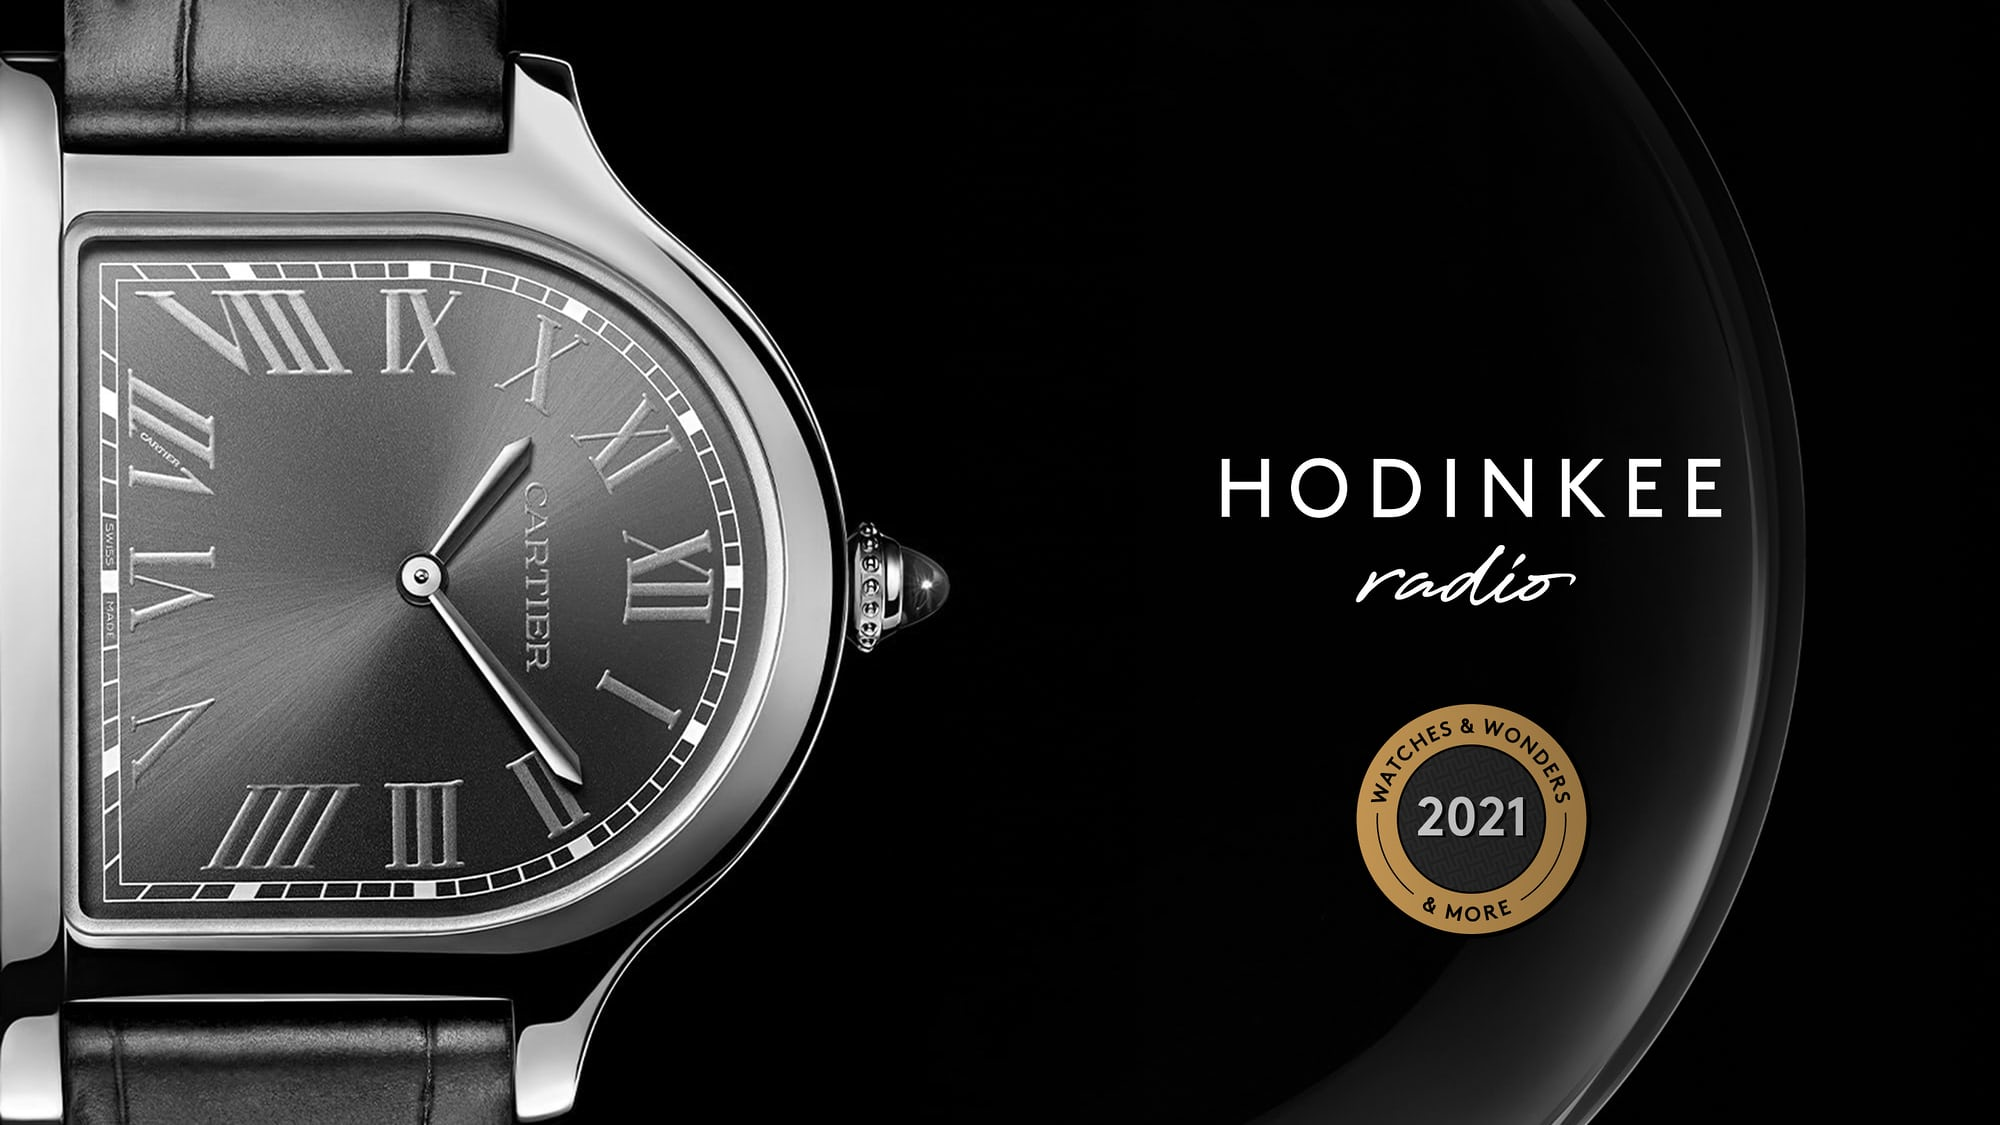 HODINKEE Radio: Watches & Wonders 2021 First Look – Bulgari, Cartier, & Hermès